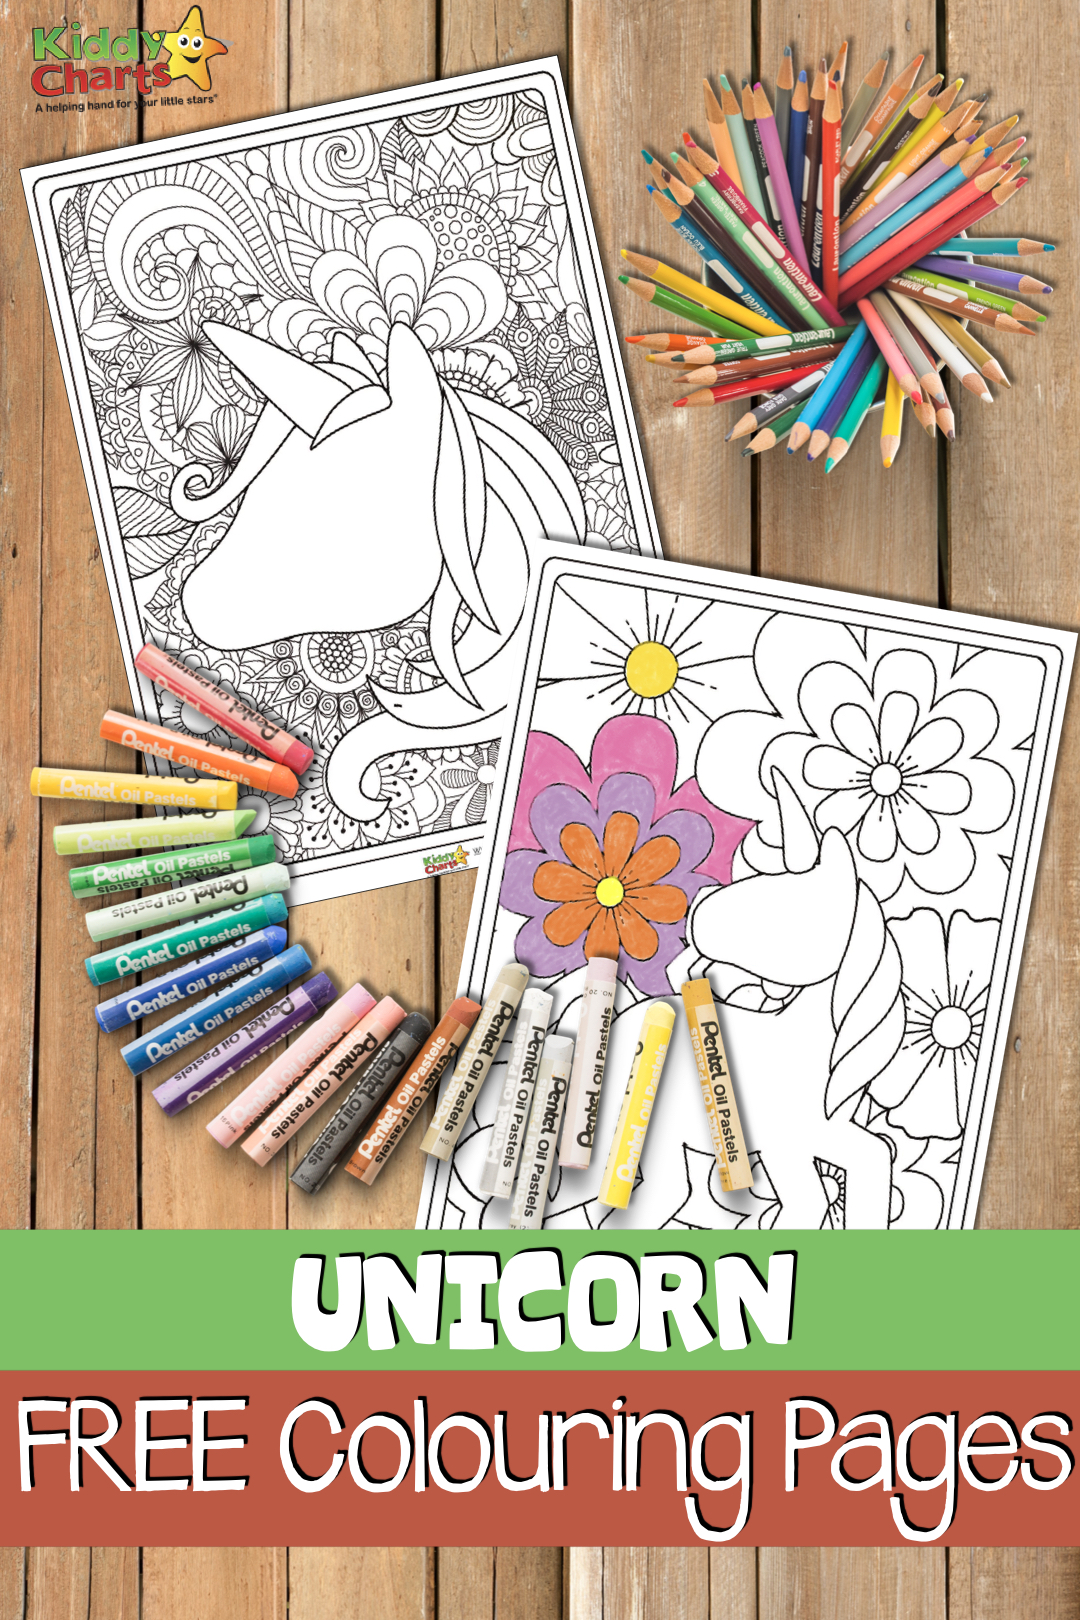 Looking for unicorn coloring pages - then we have some gorgeous kids and adult ones for you to check out. #unicorn #unicorns #coloringpages #freecoloring #adultcoloring #kidscoloring